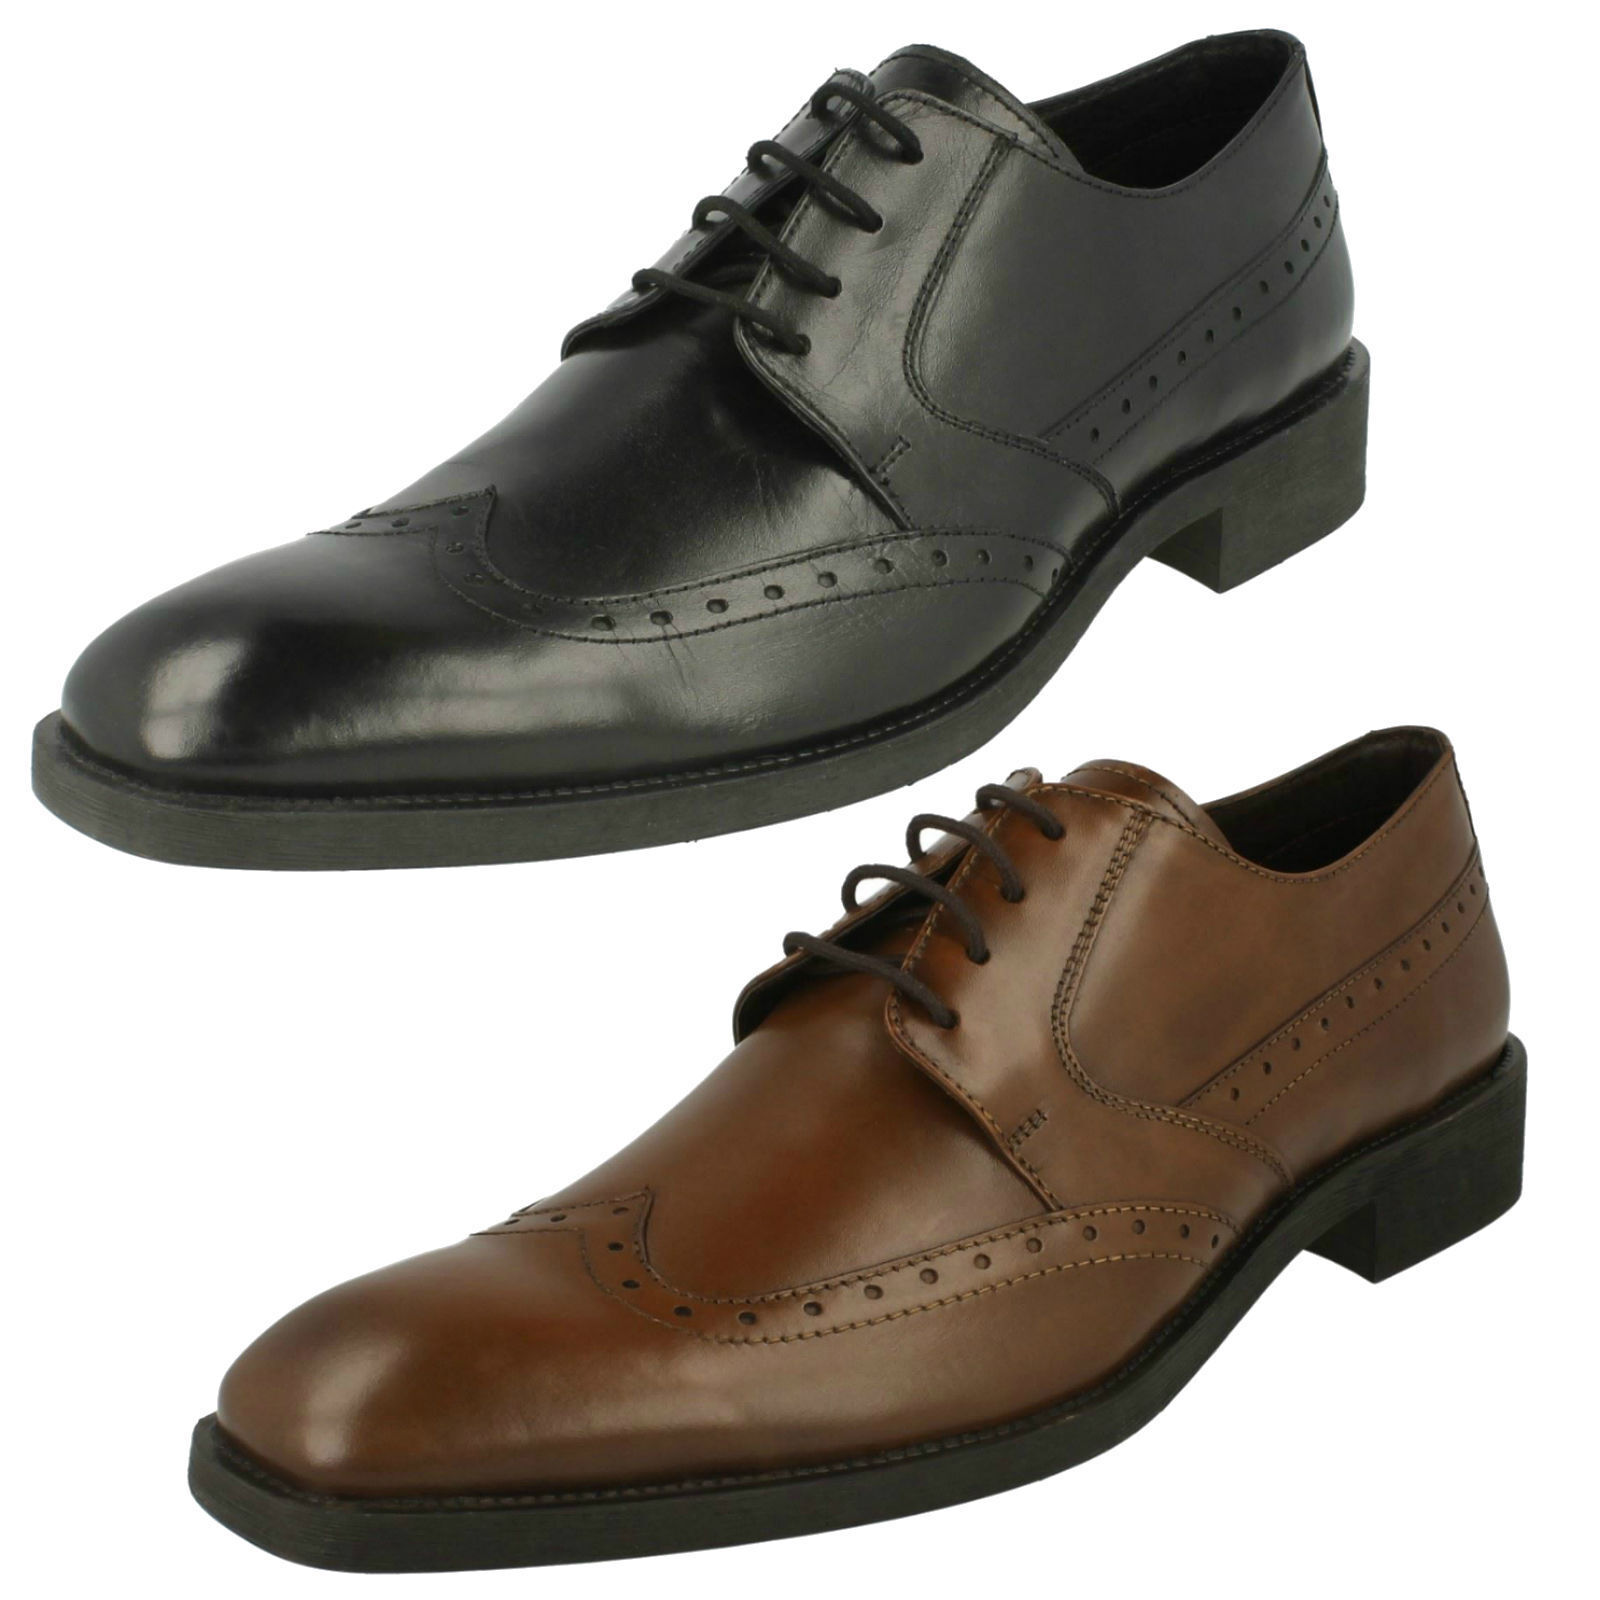 Maverick Mens Leather Lace up Shoes in black & brown style A2R121